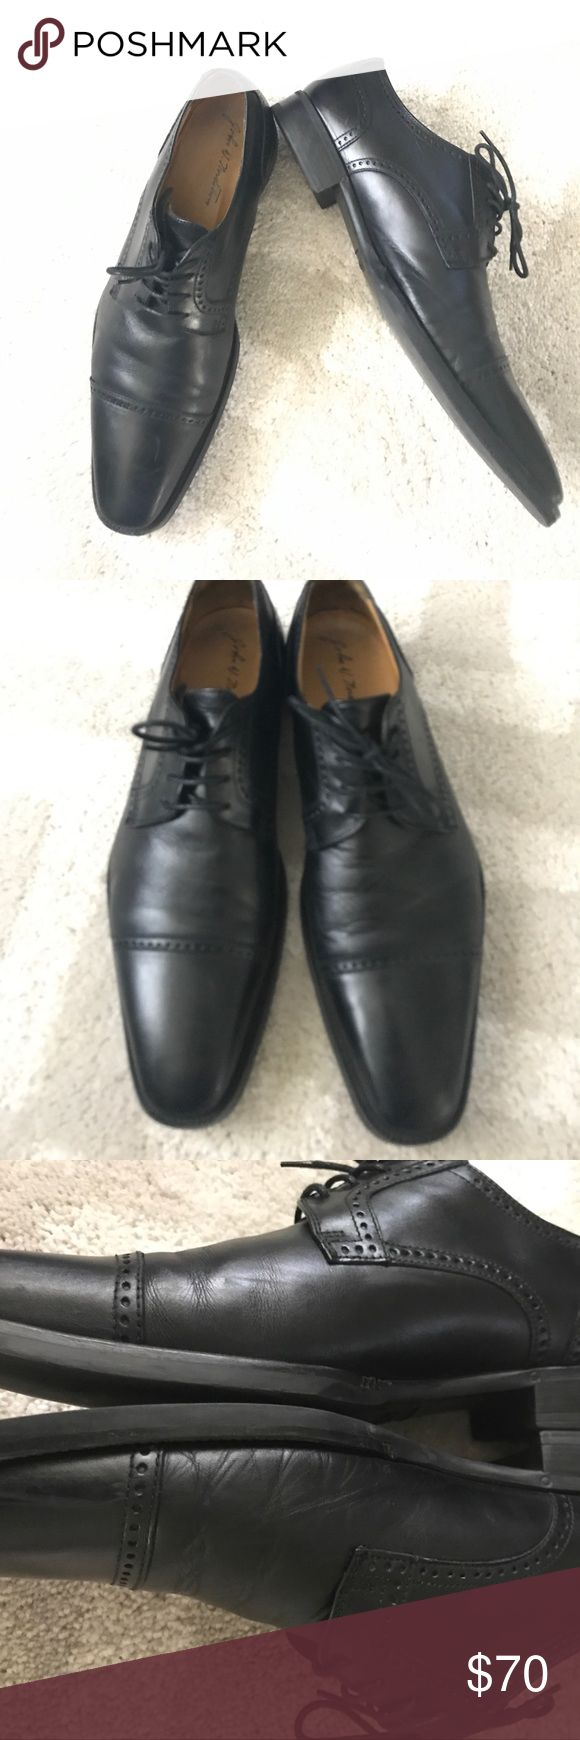 Men's Derby shoes 🚫🅿🅿🚫NO TRADES‼️Men's Nordstrom brand derby shoes. In great condition. Black color, minor scratches, and minor creasing. Upper leather rubber soles. No box John W. Nordstrom Shoes Oxfords & Derbys